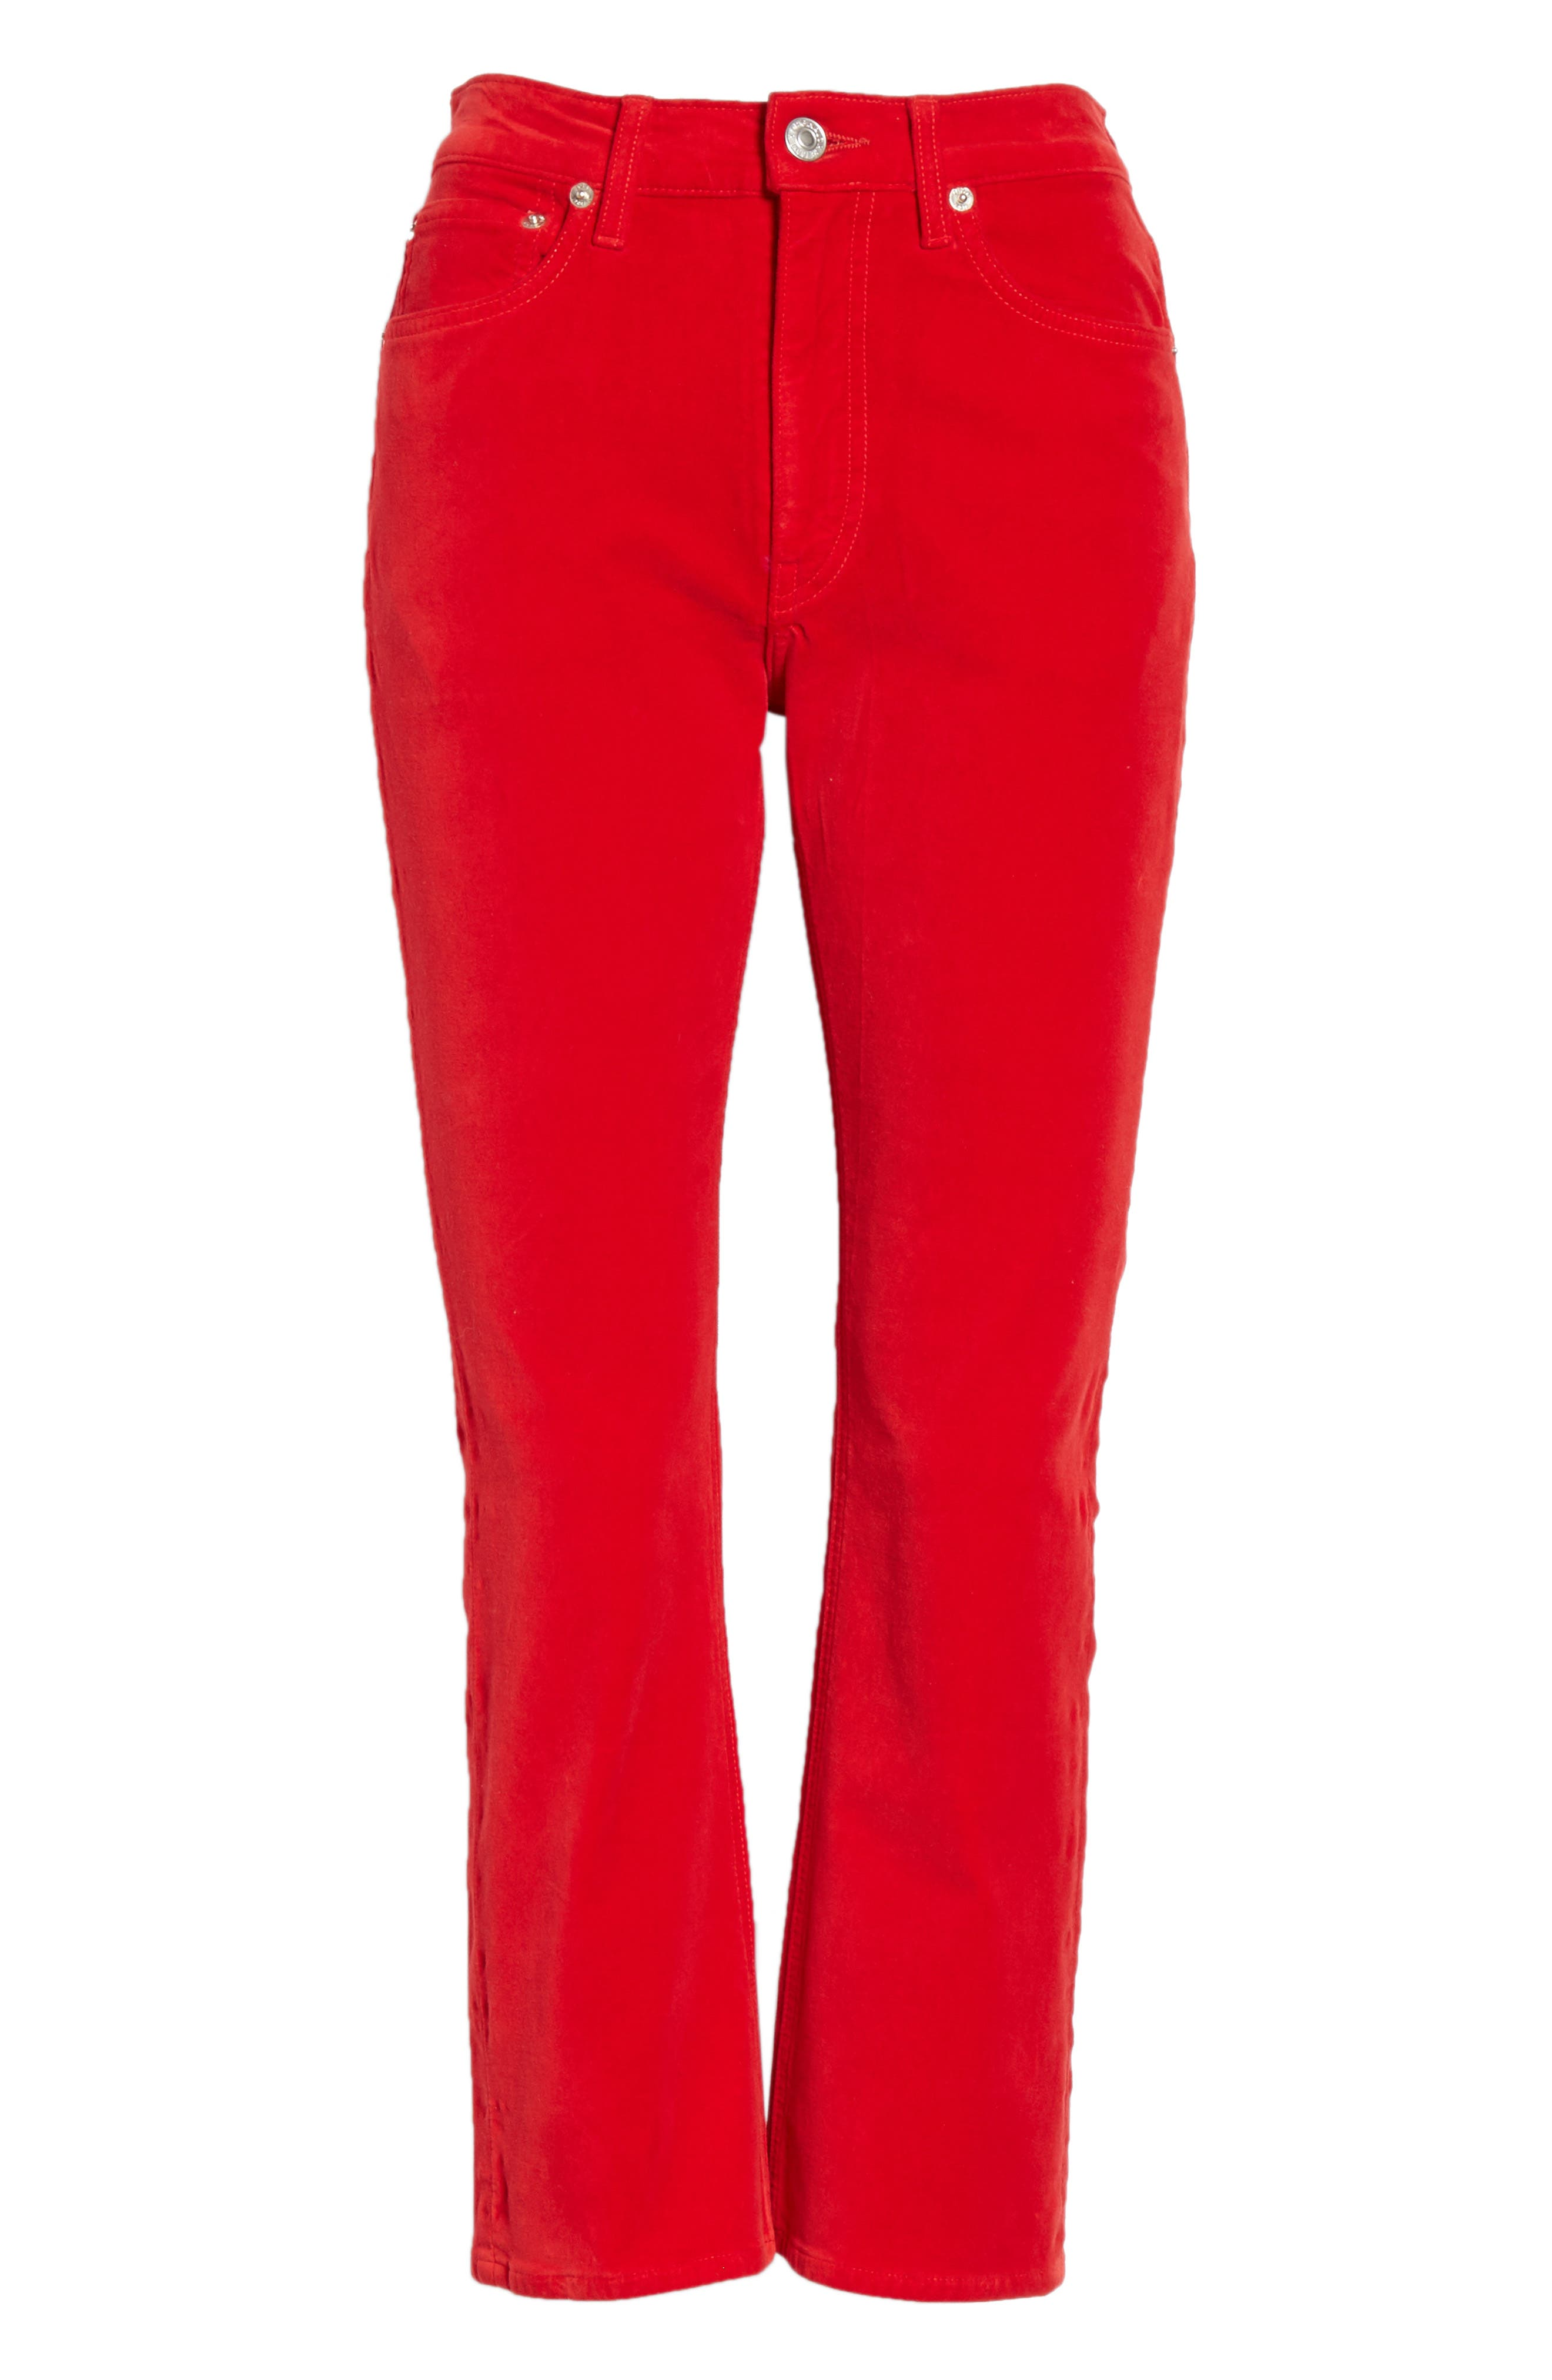 Velvet Crop Kick Flare Jeans,                             Alternate thumbnail 6, color,                             RED